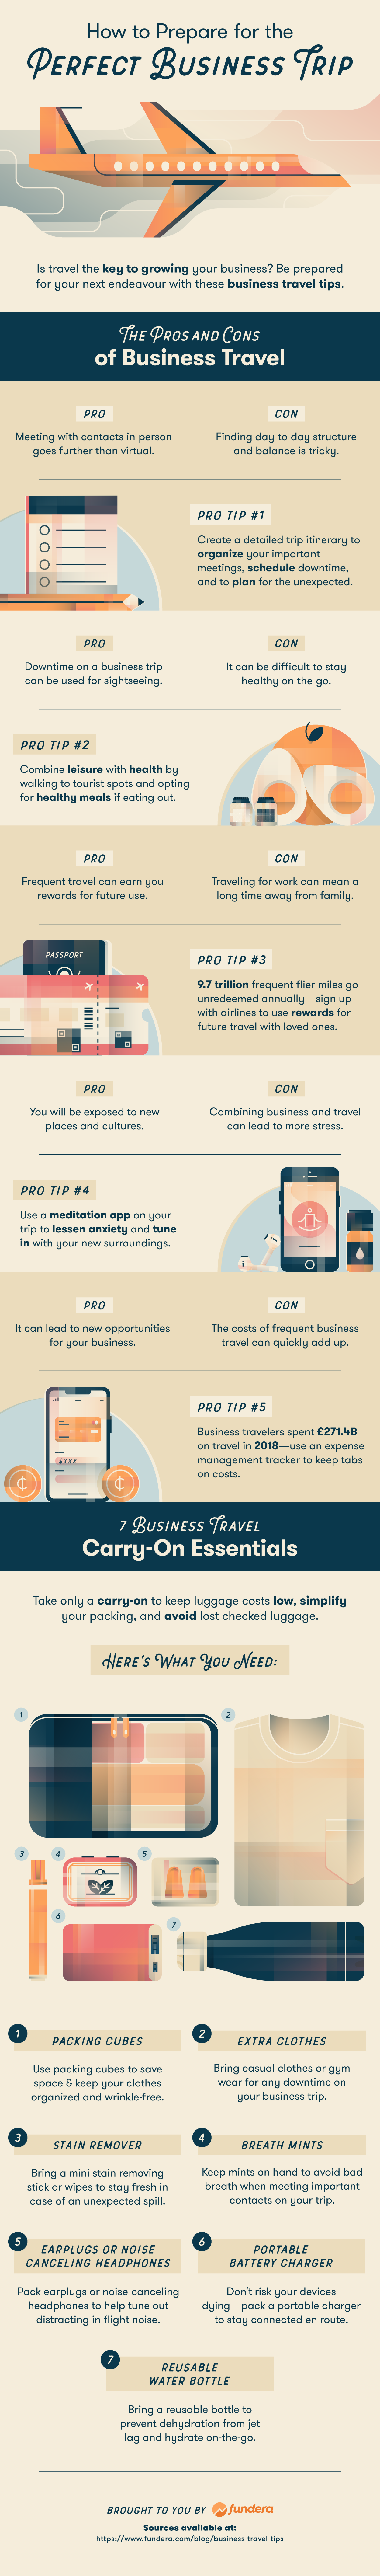 Business travel tips to maximise your budget and time